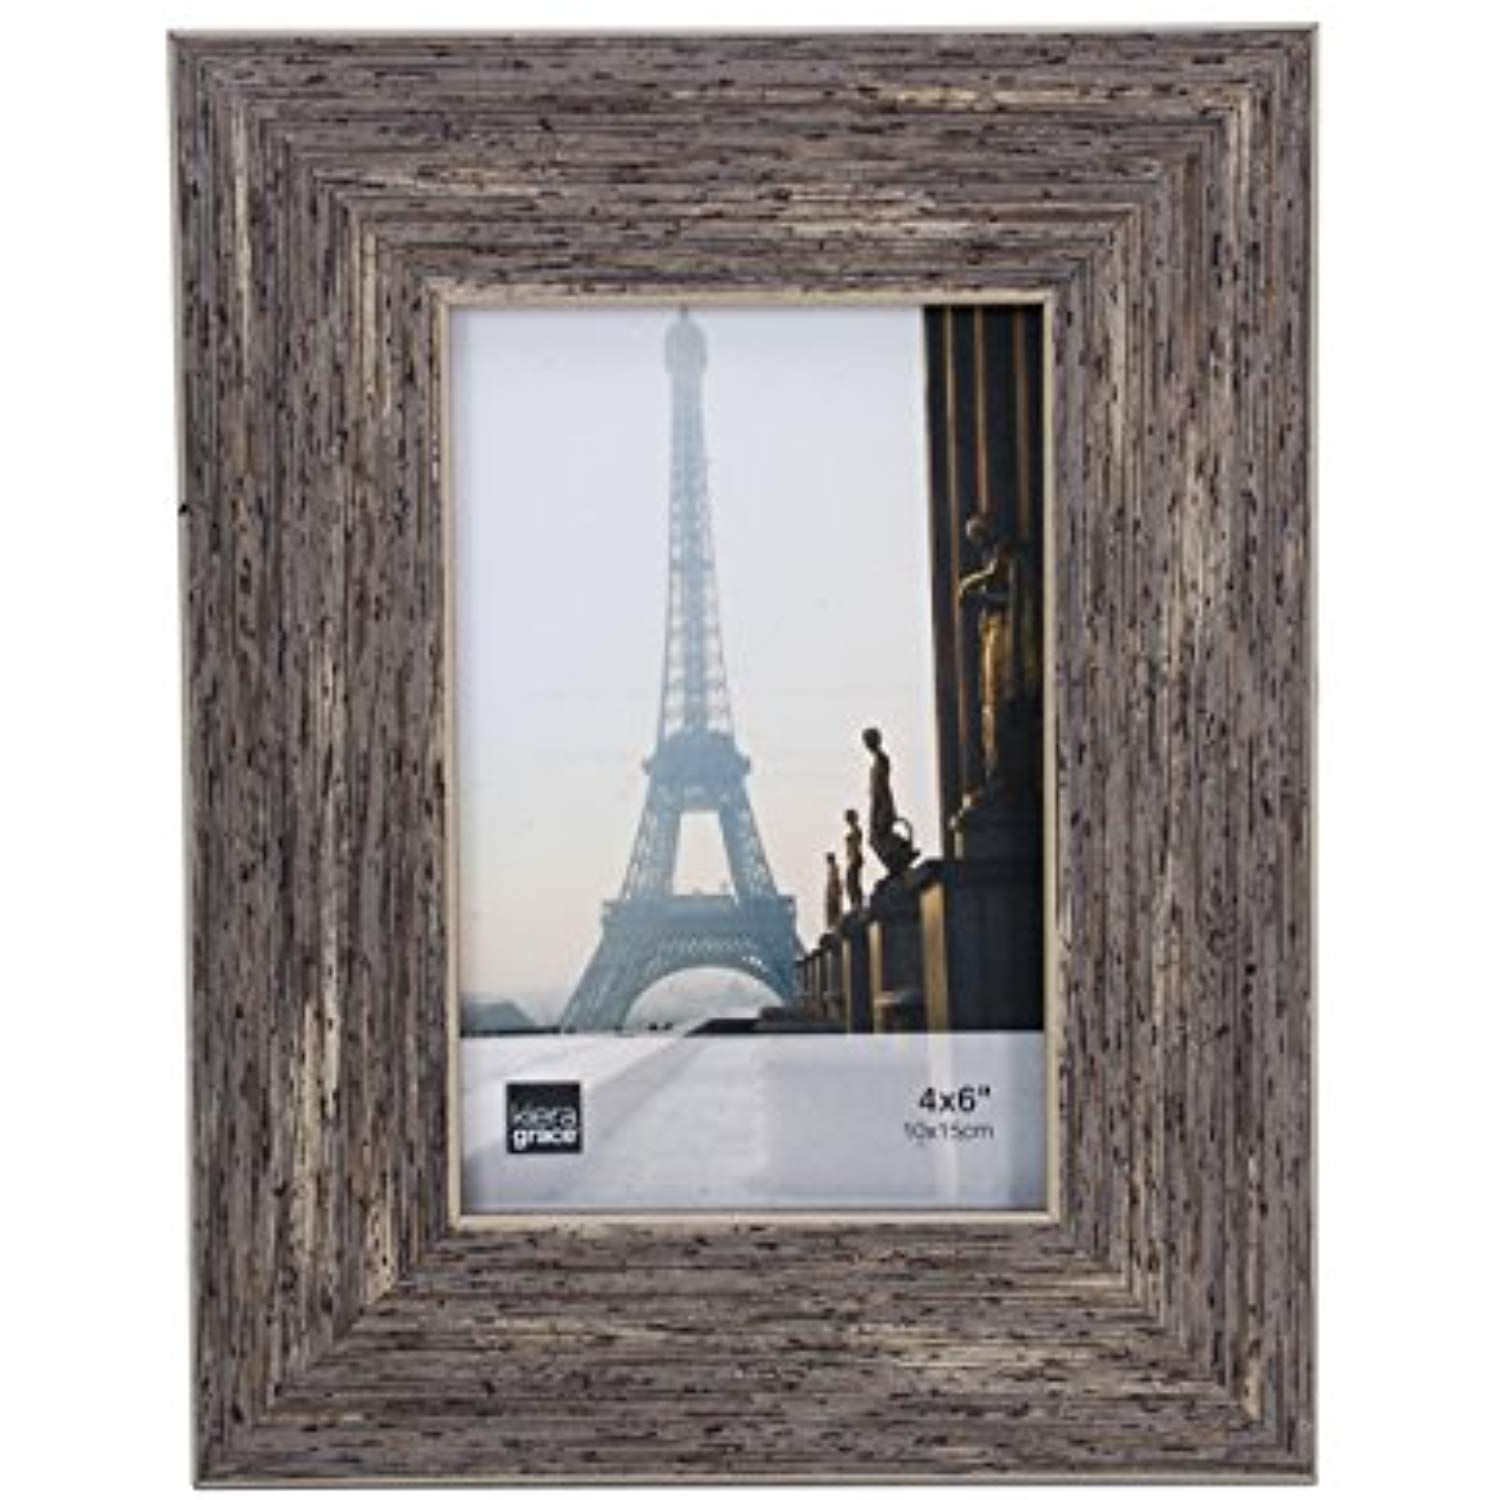 Kiera Grace Emery Picture Frame 4 By 6 Inch Plastic Resin Weathered Grey Reclaimed Wood Veneer Family Picture Frames Reclaimed Wood Finish Picture Frames